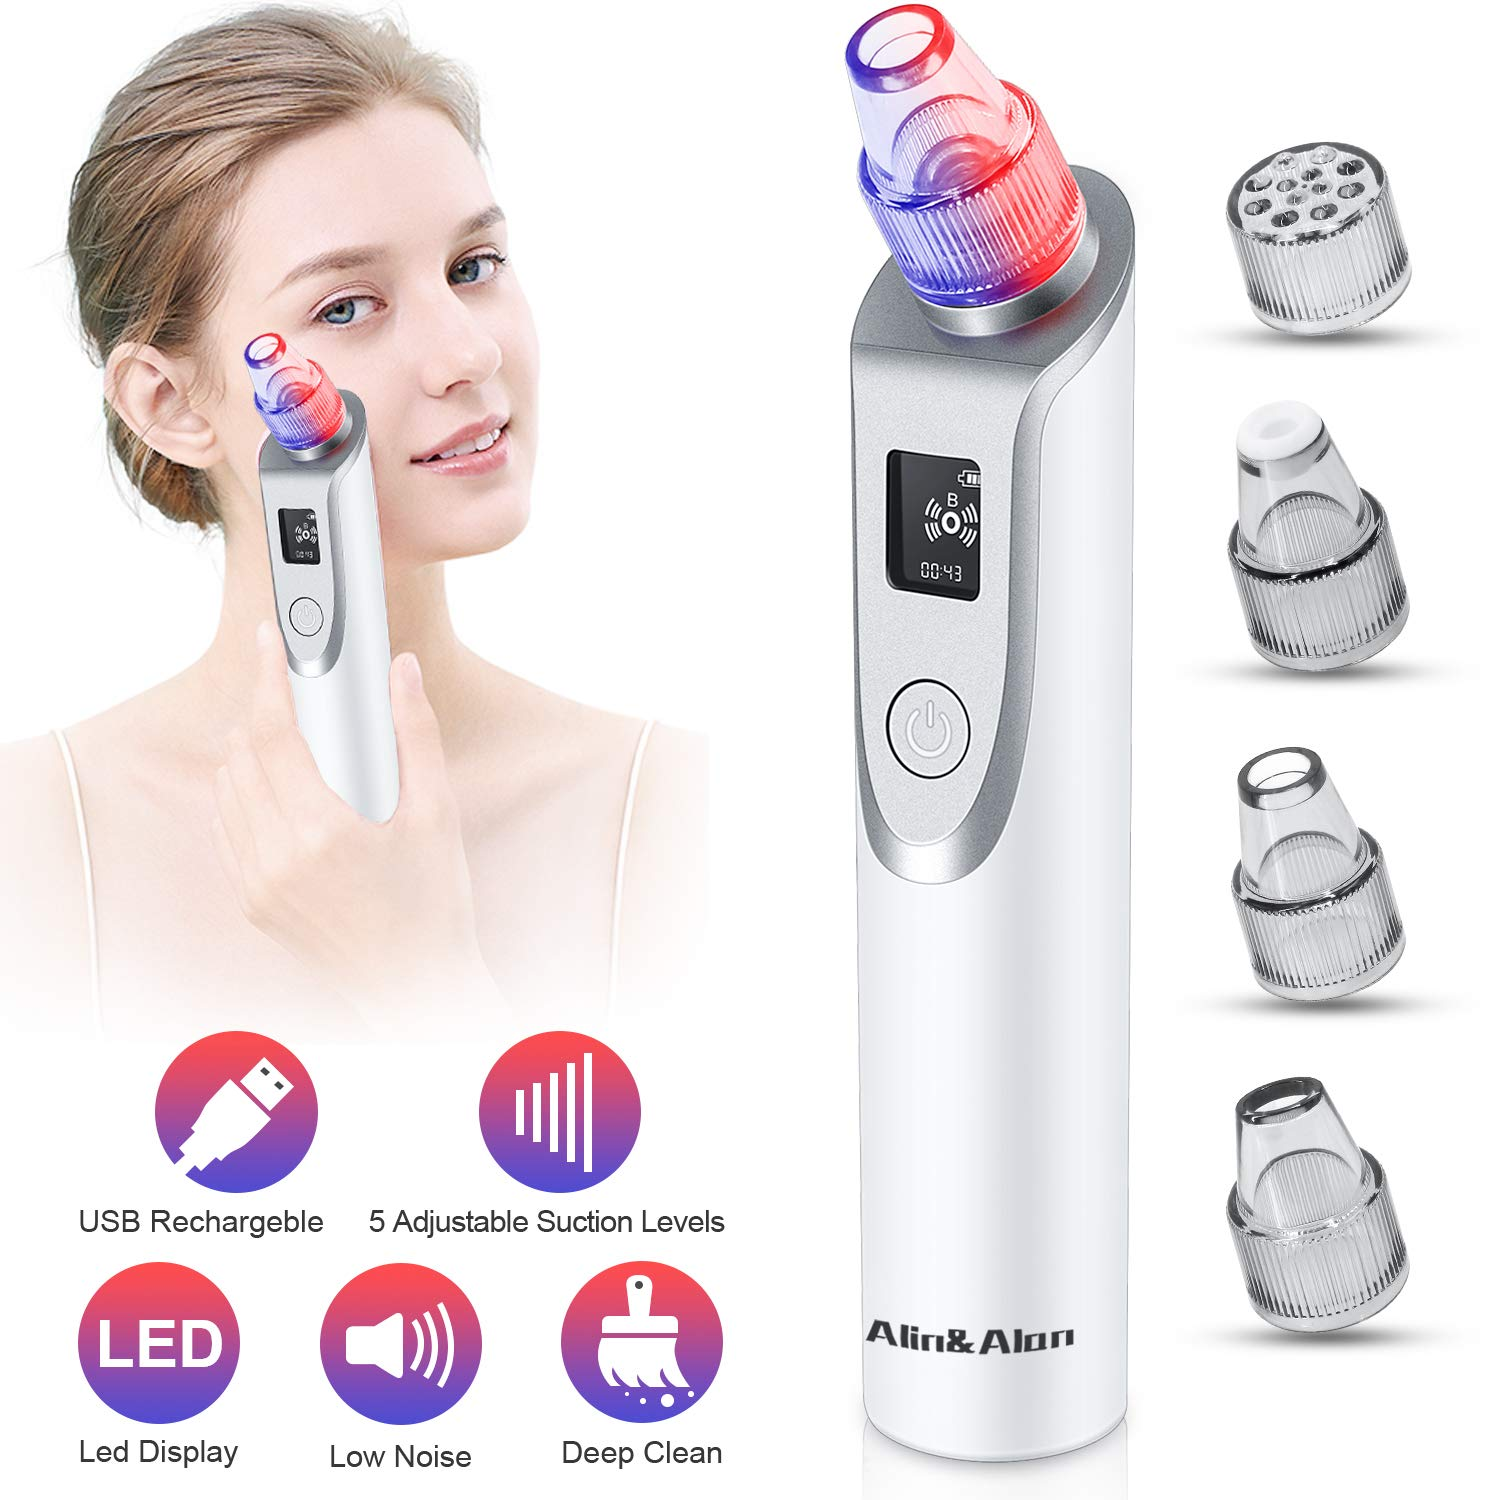 Blackhead Remover Vacuum - Pore Cleaner Electric Blackhead Suction Facial Comedo Acne Extractor Tool for Women & Men by Alin&Alan